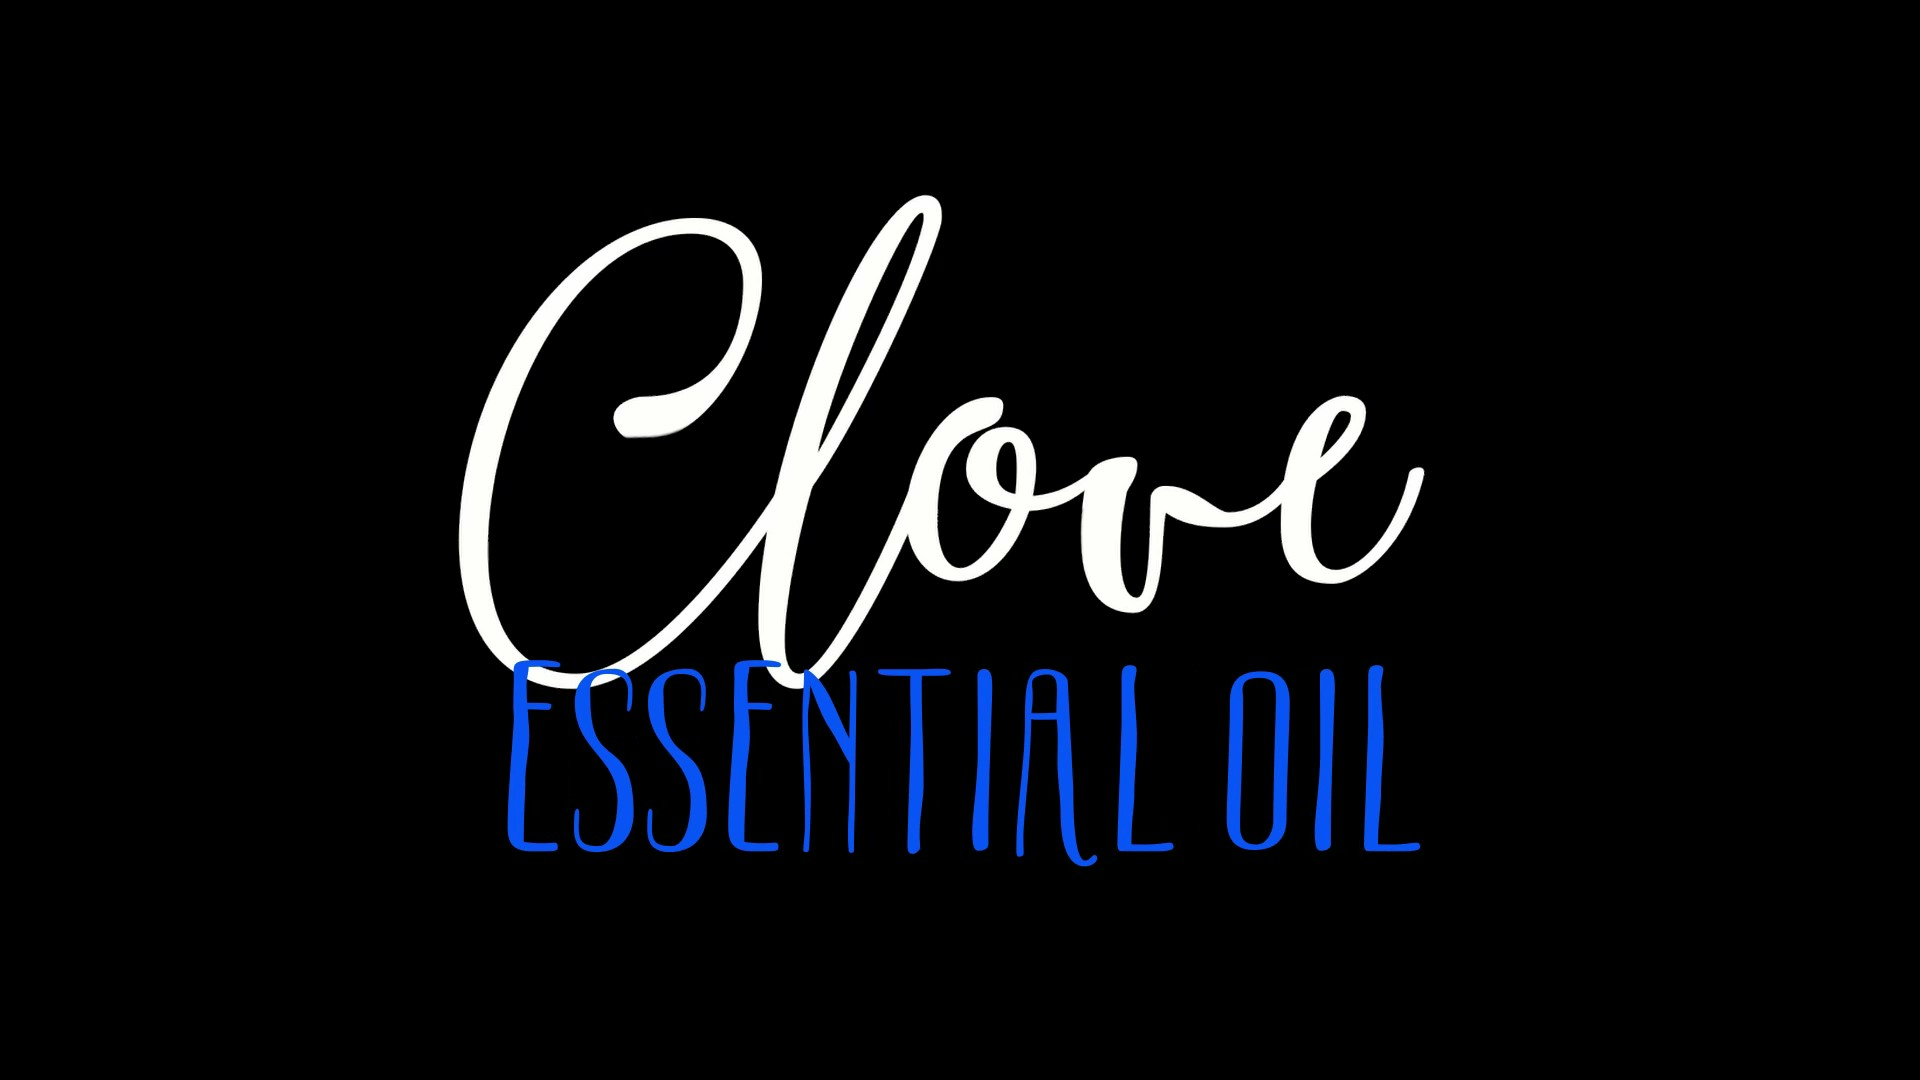 What does Clove Essential Oil have to do with Sex? Autophagy - that's what.